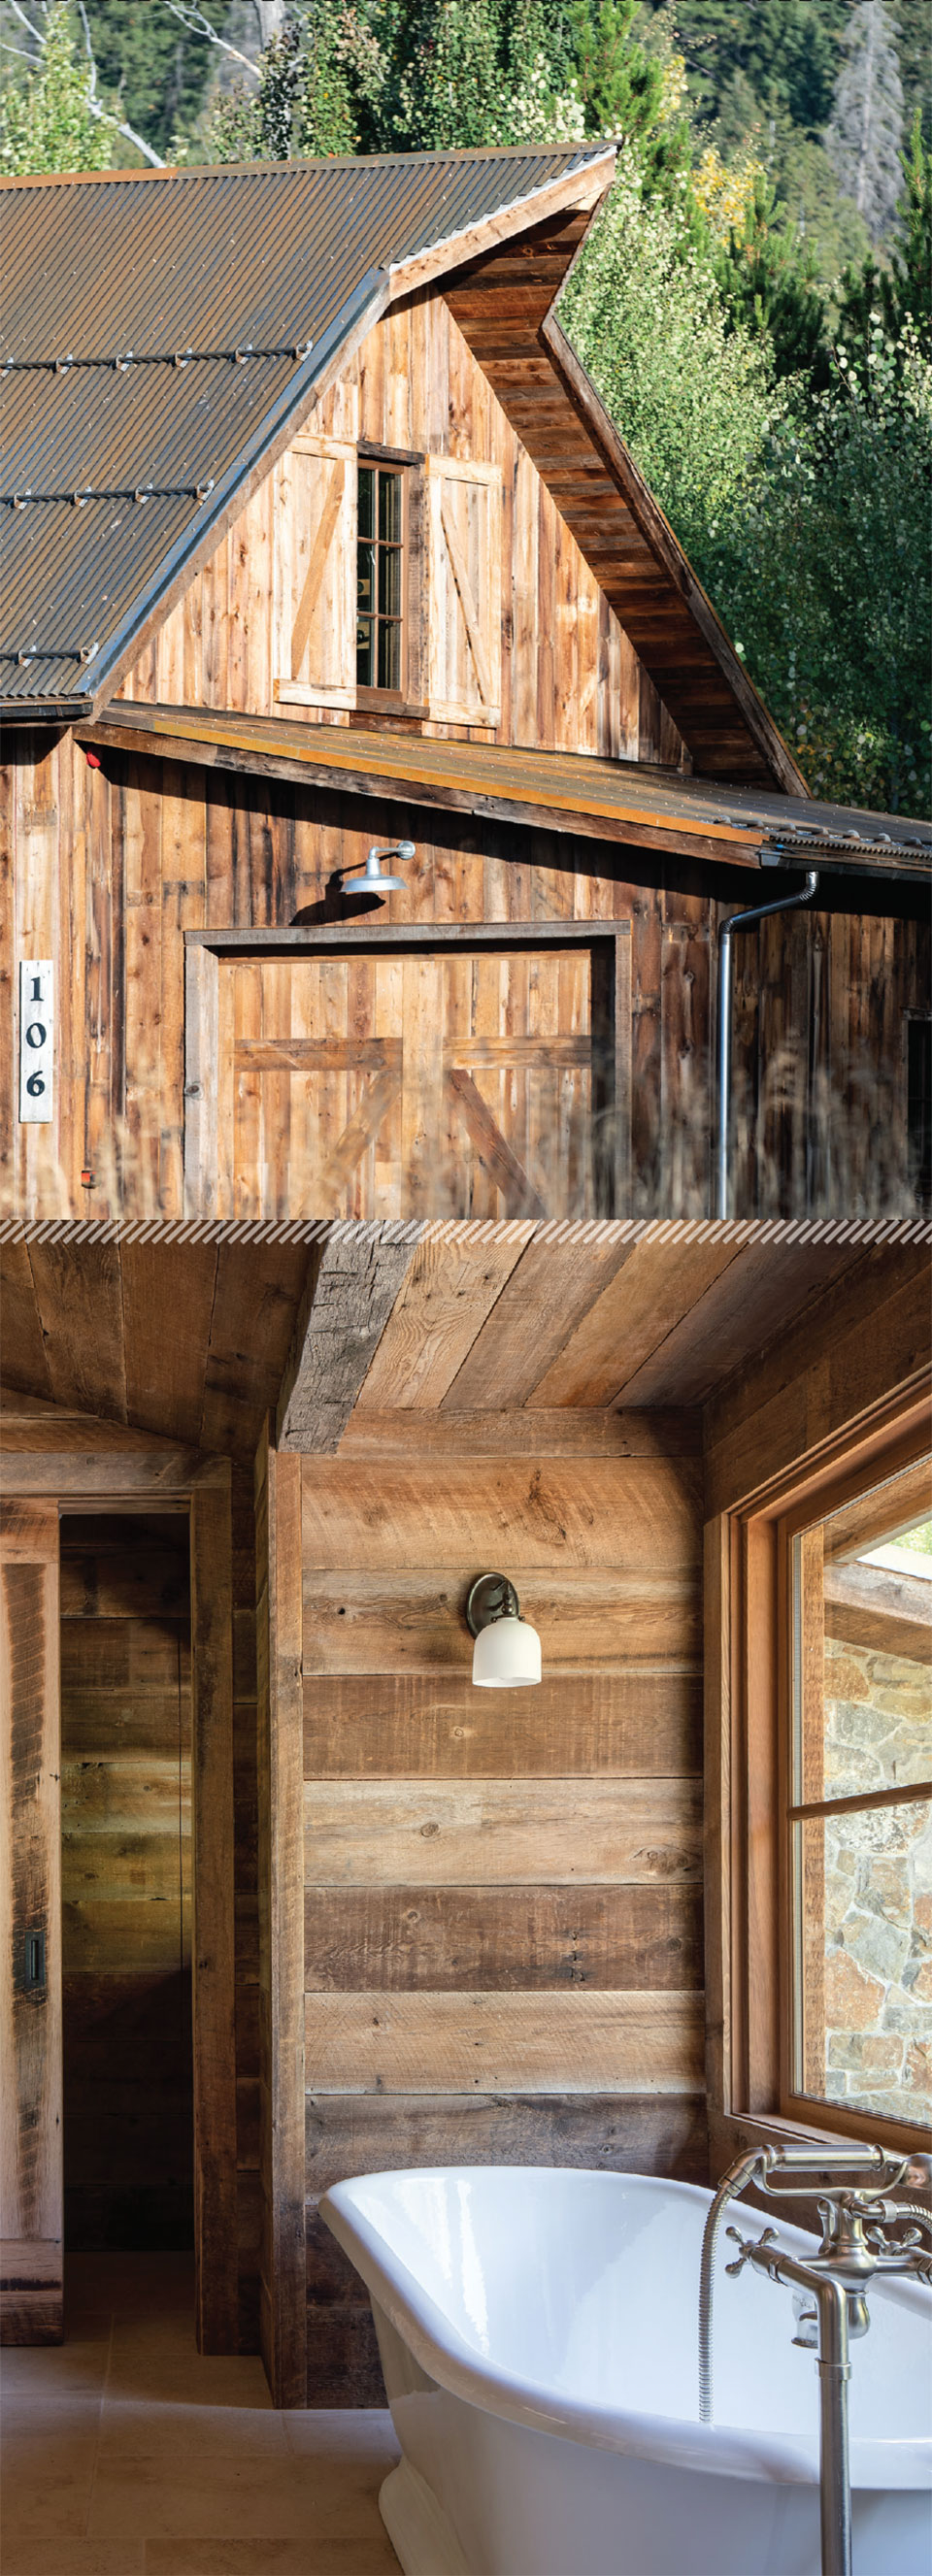 Working with Wood in the Modern West- Sun Valley Barn